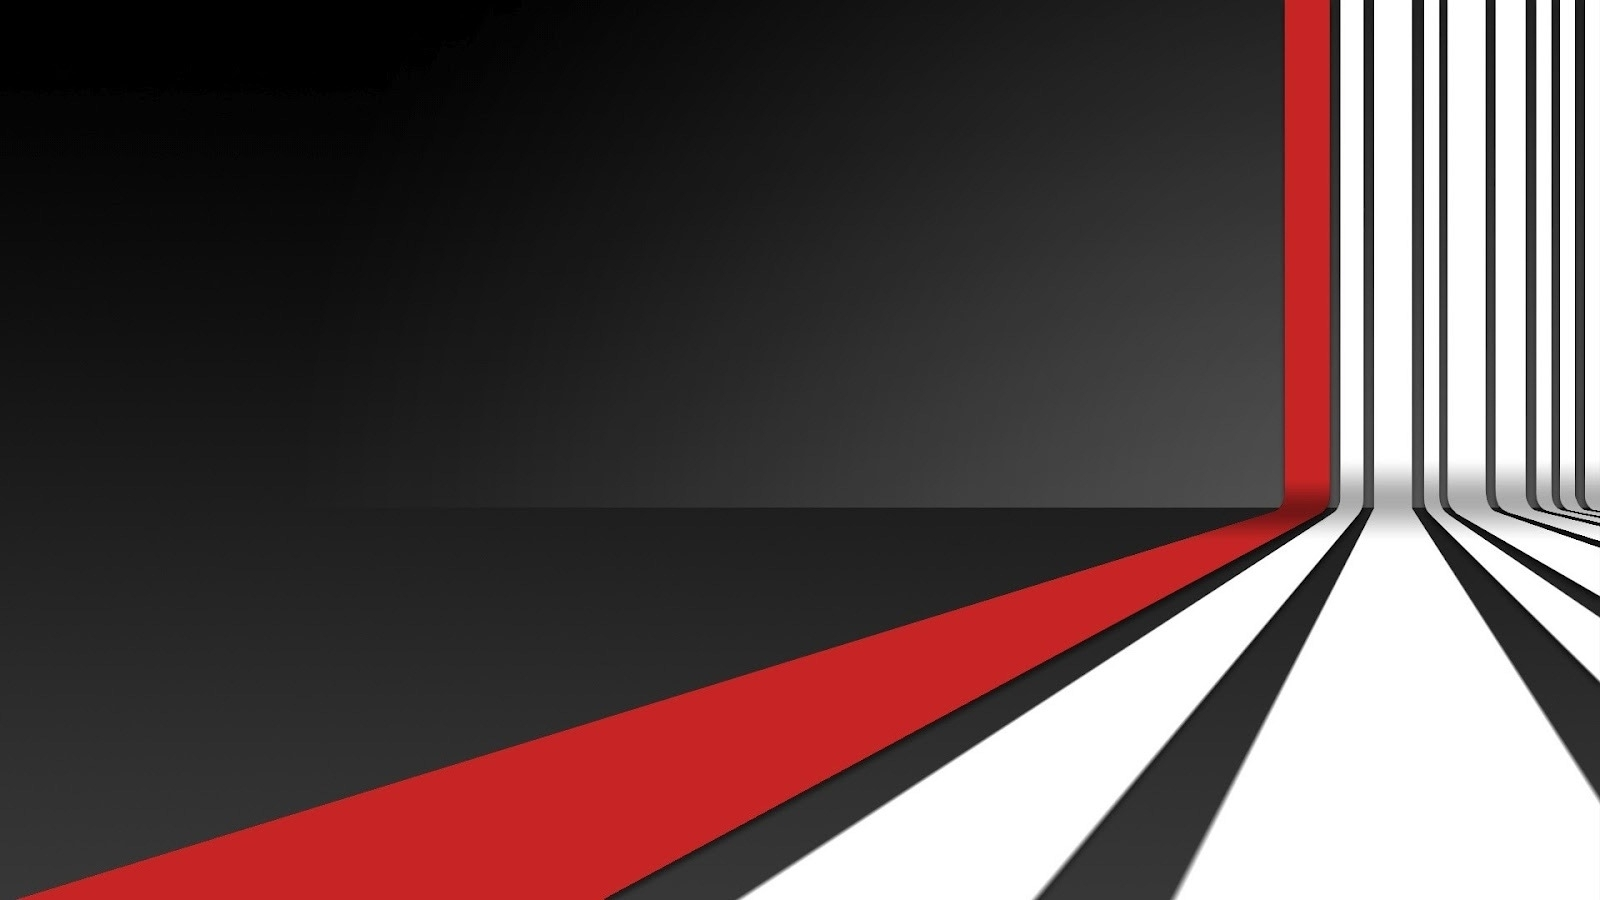 Title : black-and-red-hd-wallpapers-white-line-backgrounds | vegas legal. Dimension : 1600 x 900. File Type : JPG/JPEG